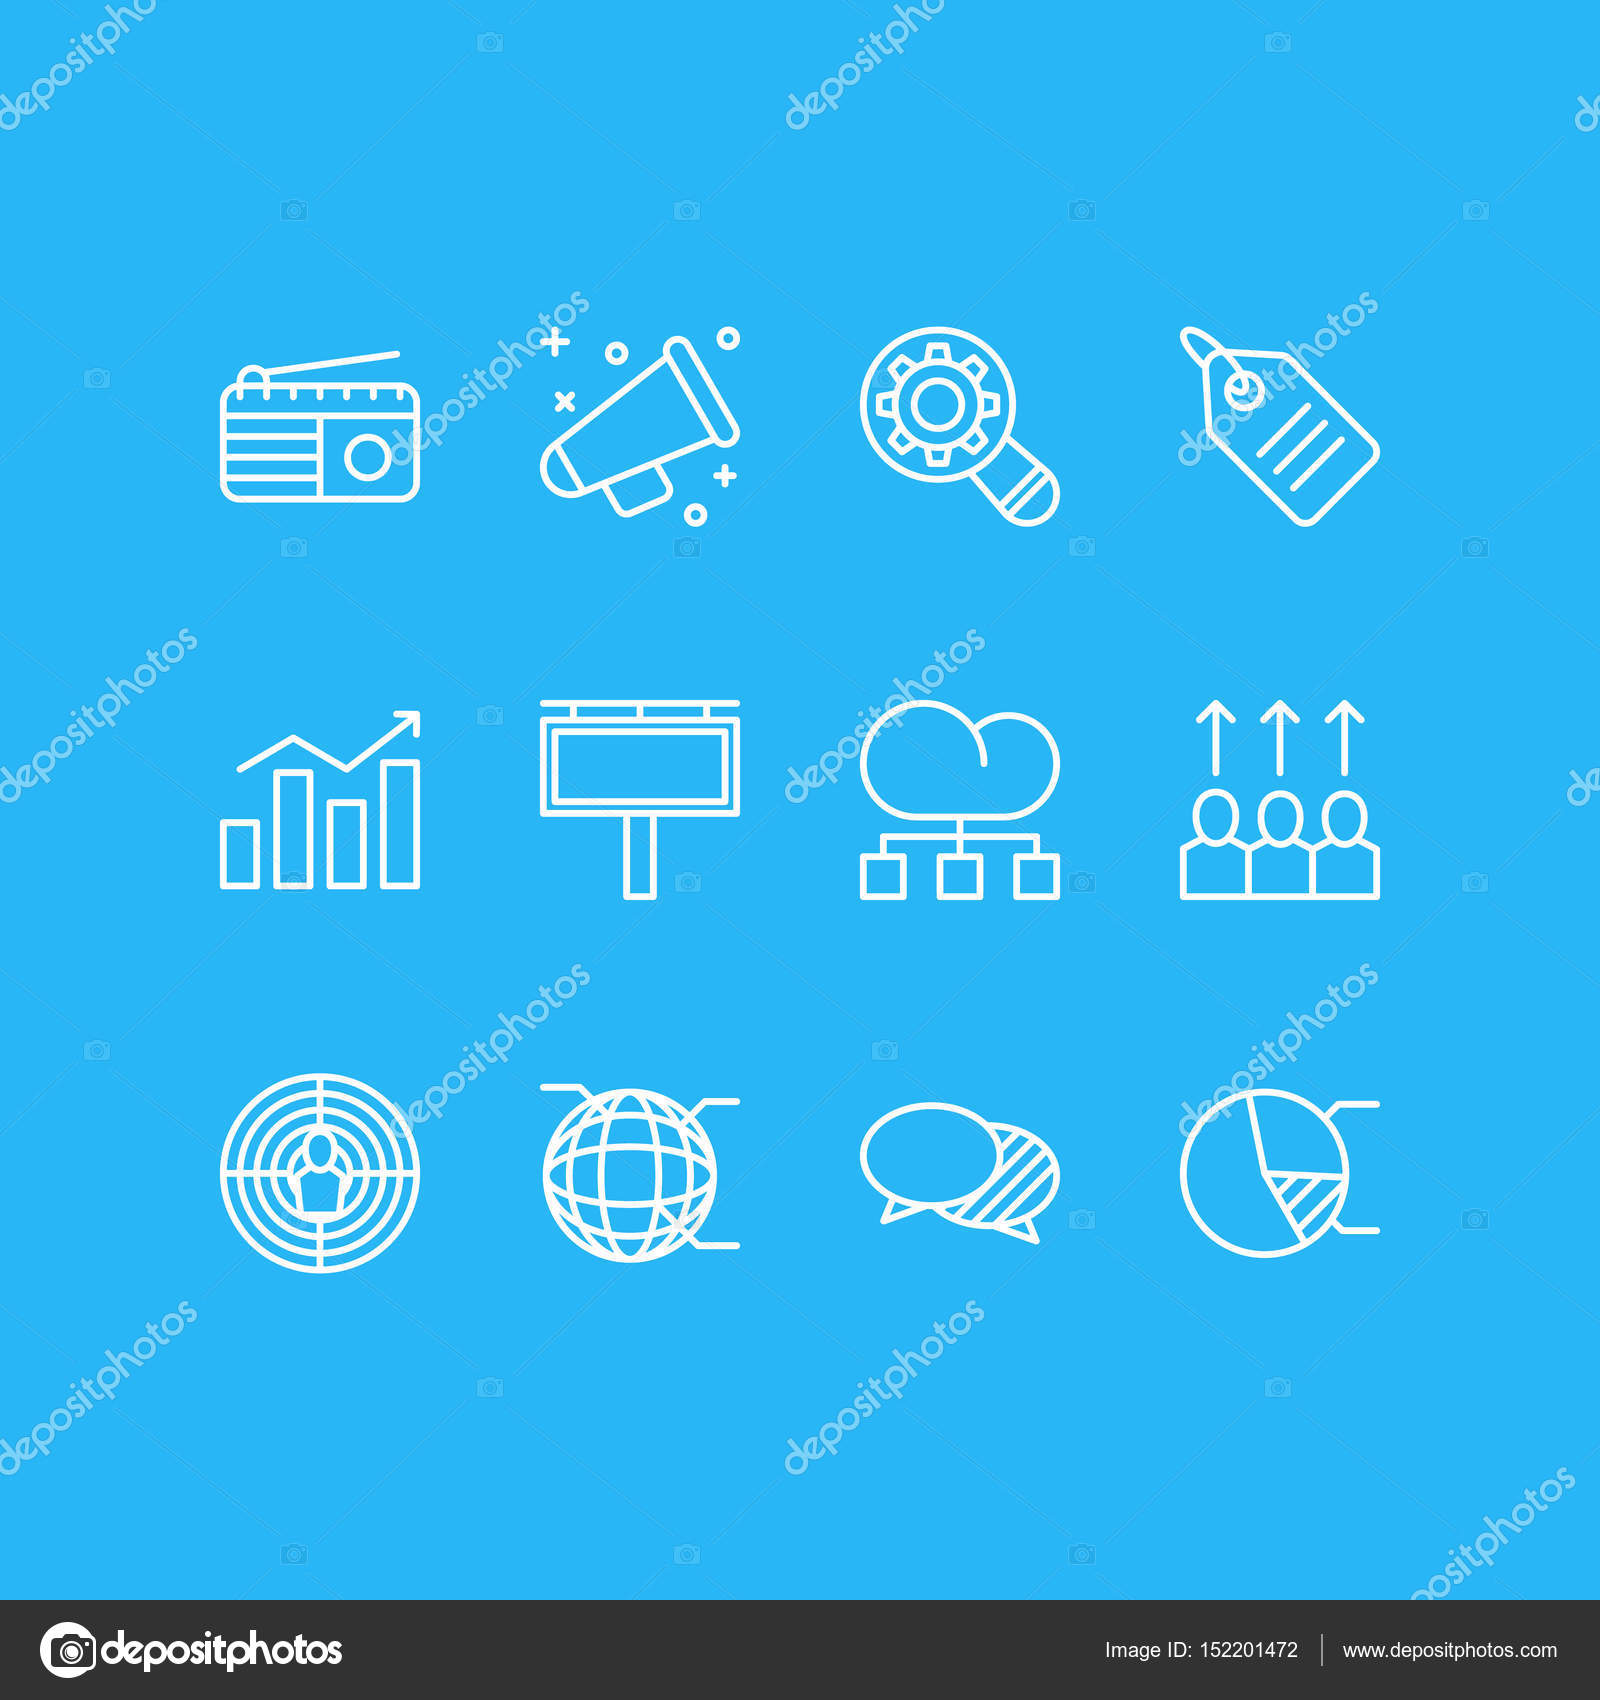 Vector illustration of 12 advertising icons editable pack of circle vector illustration of 12 advertising icons editable pack of circle diagram network announcement ccuart Image collections